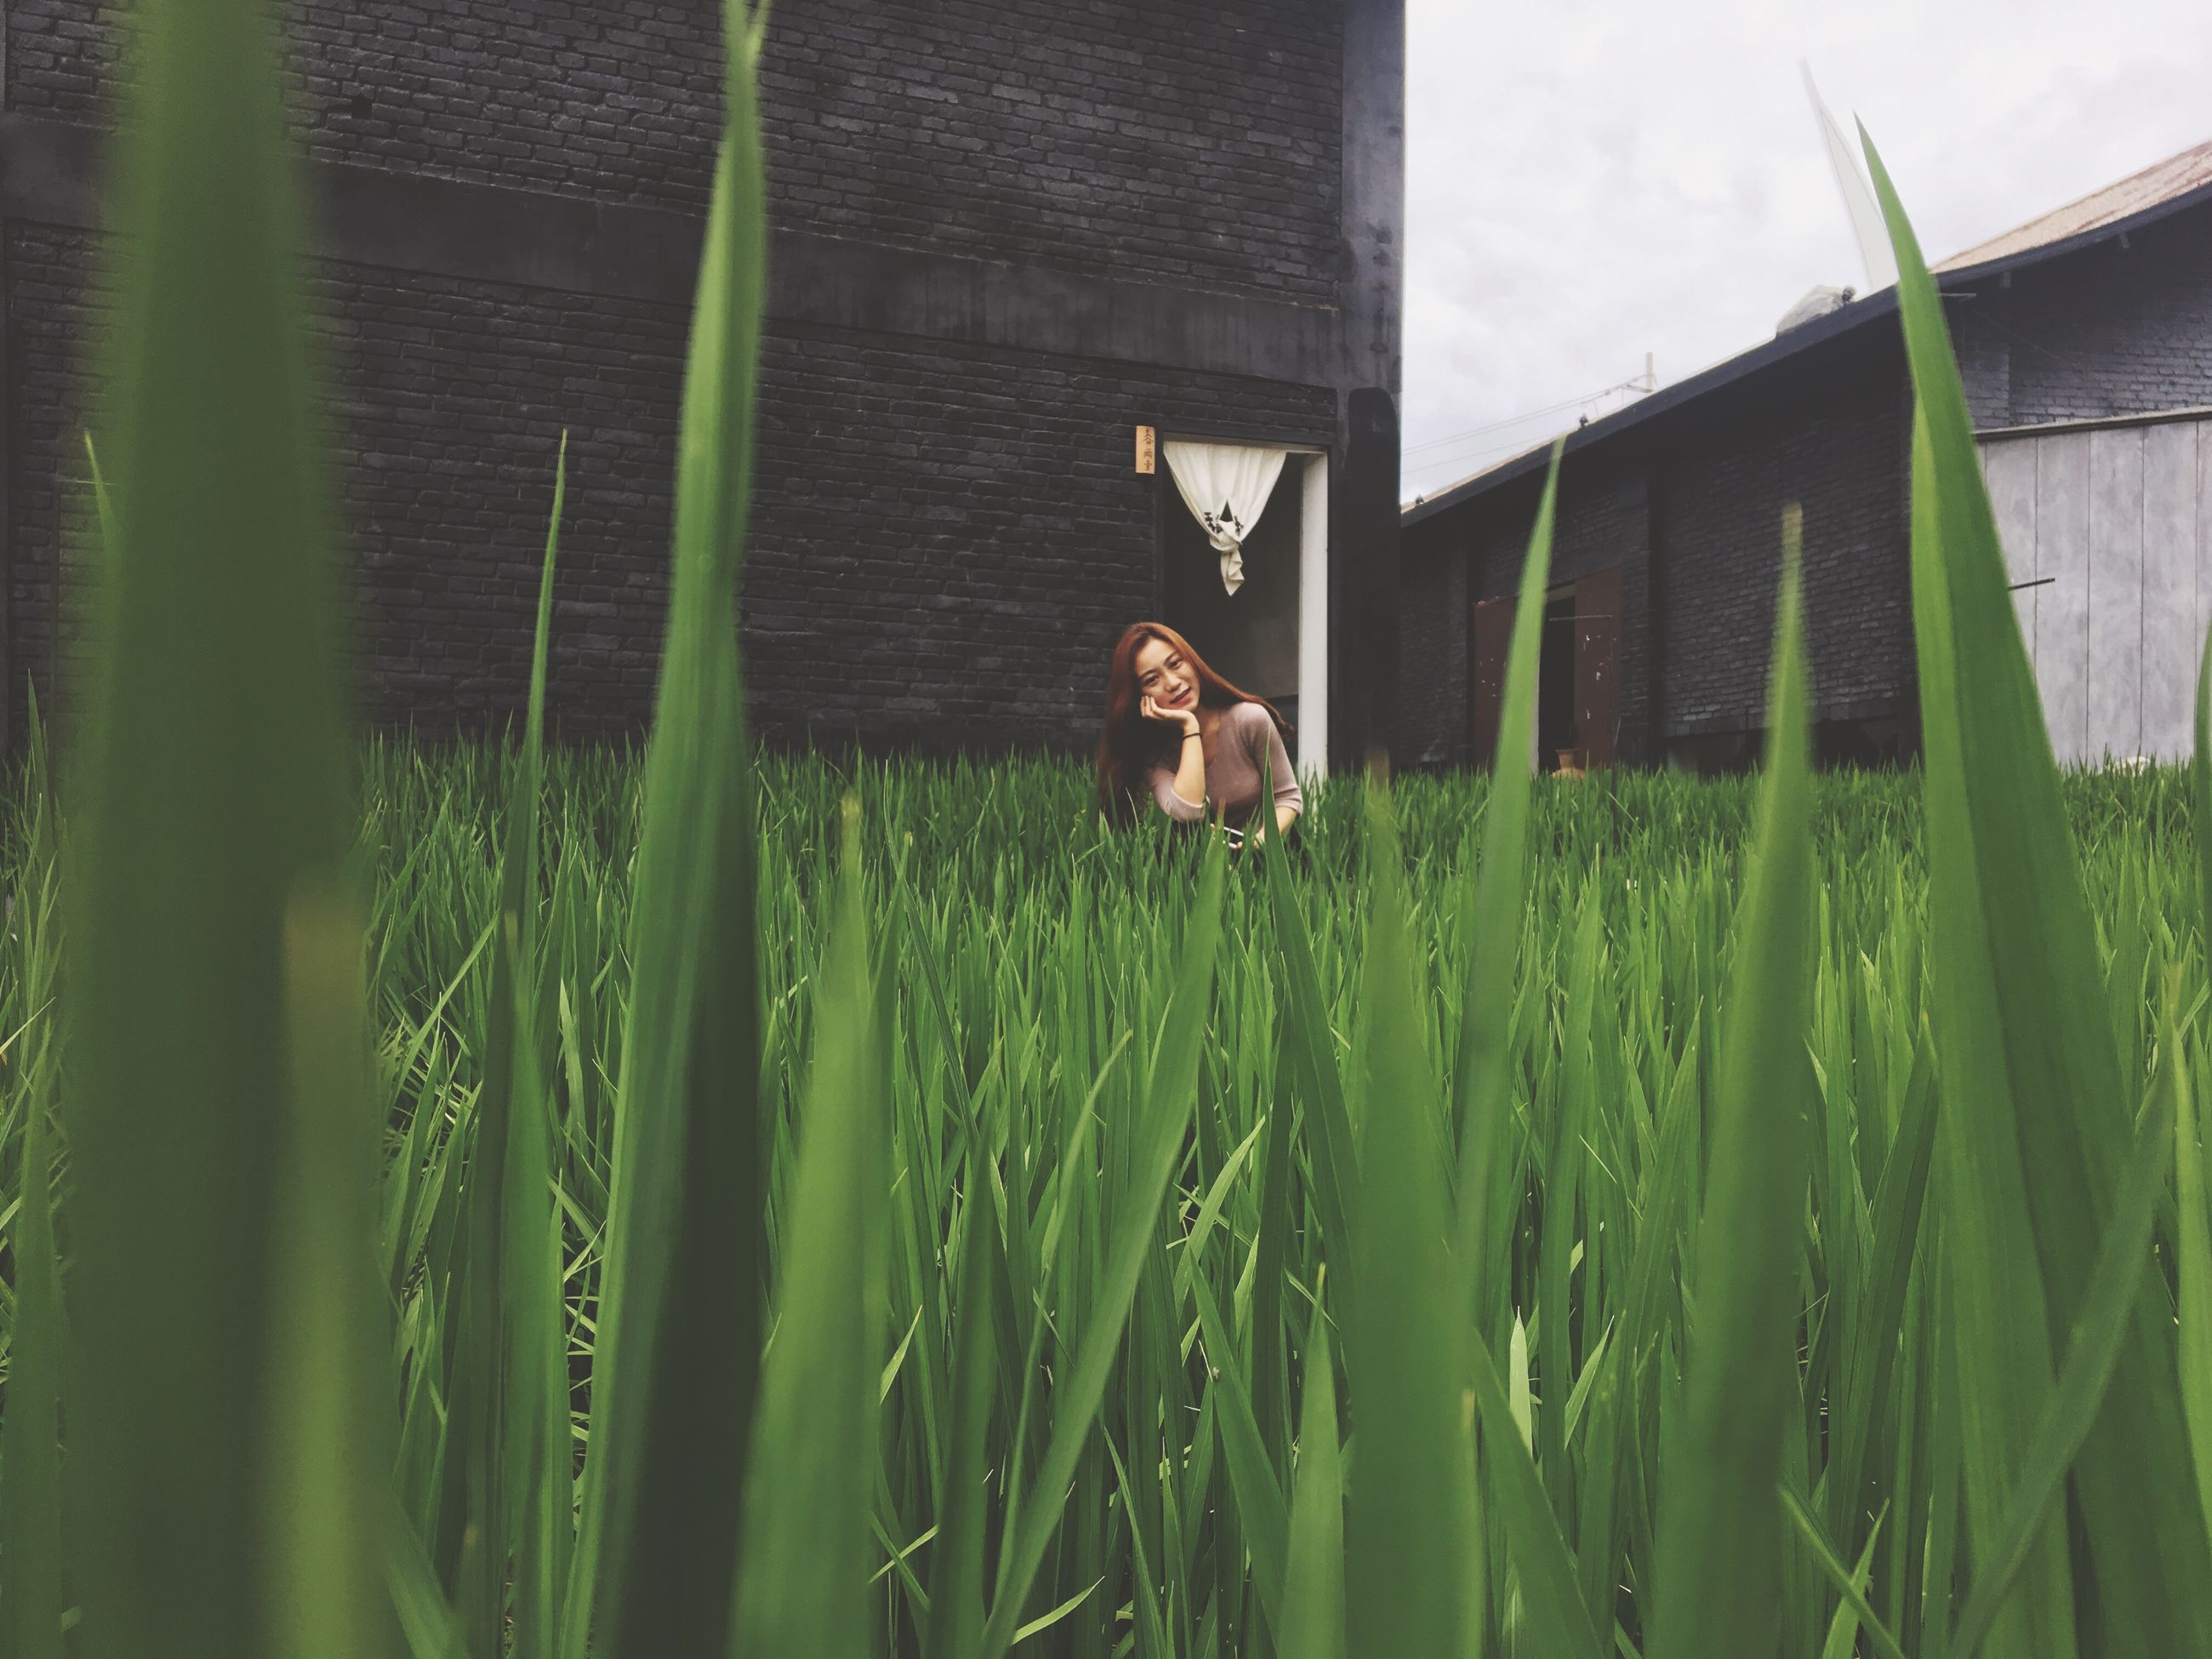 grass, green color, growth, field, building exterior, nature, built structure, architecture, outdoors, day, one animal, plant, real people, one person, animal themes, mammal, beauty in nature, sky, close-up, people